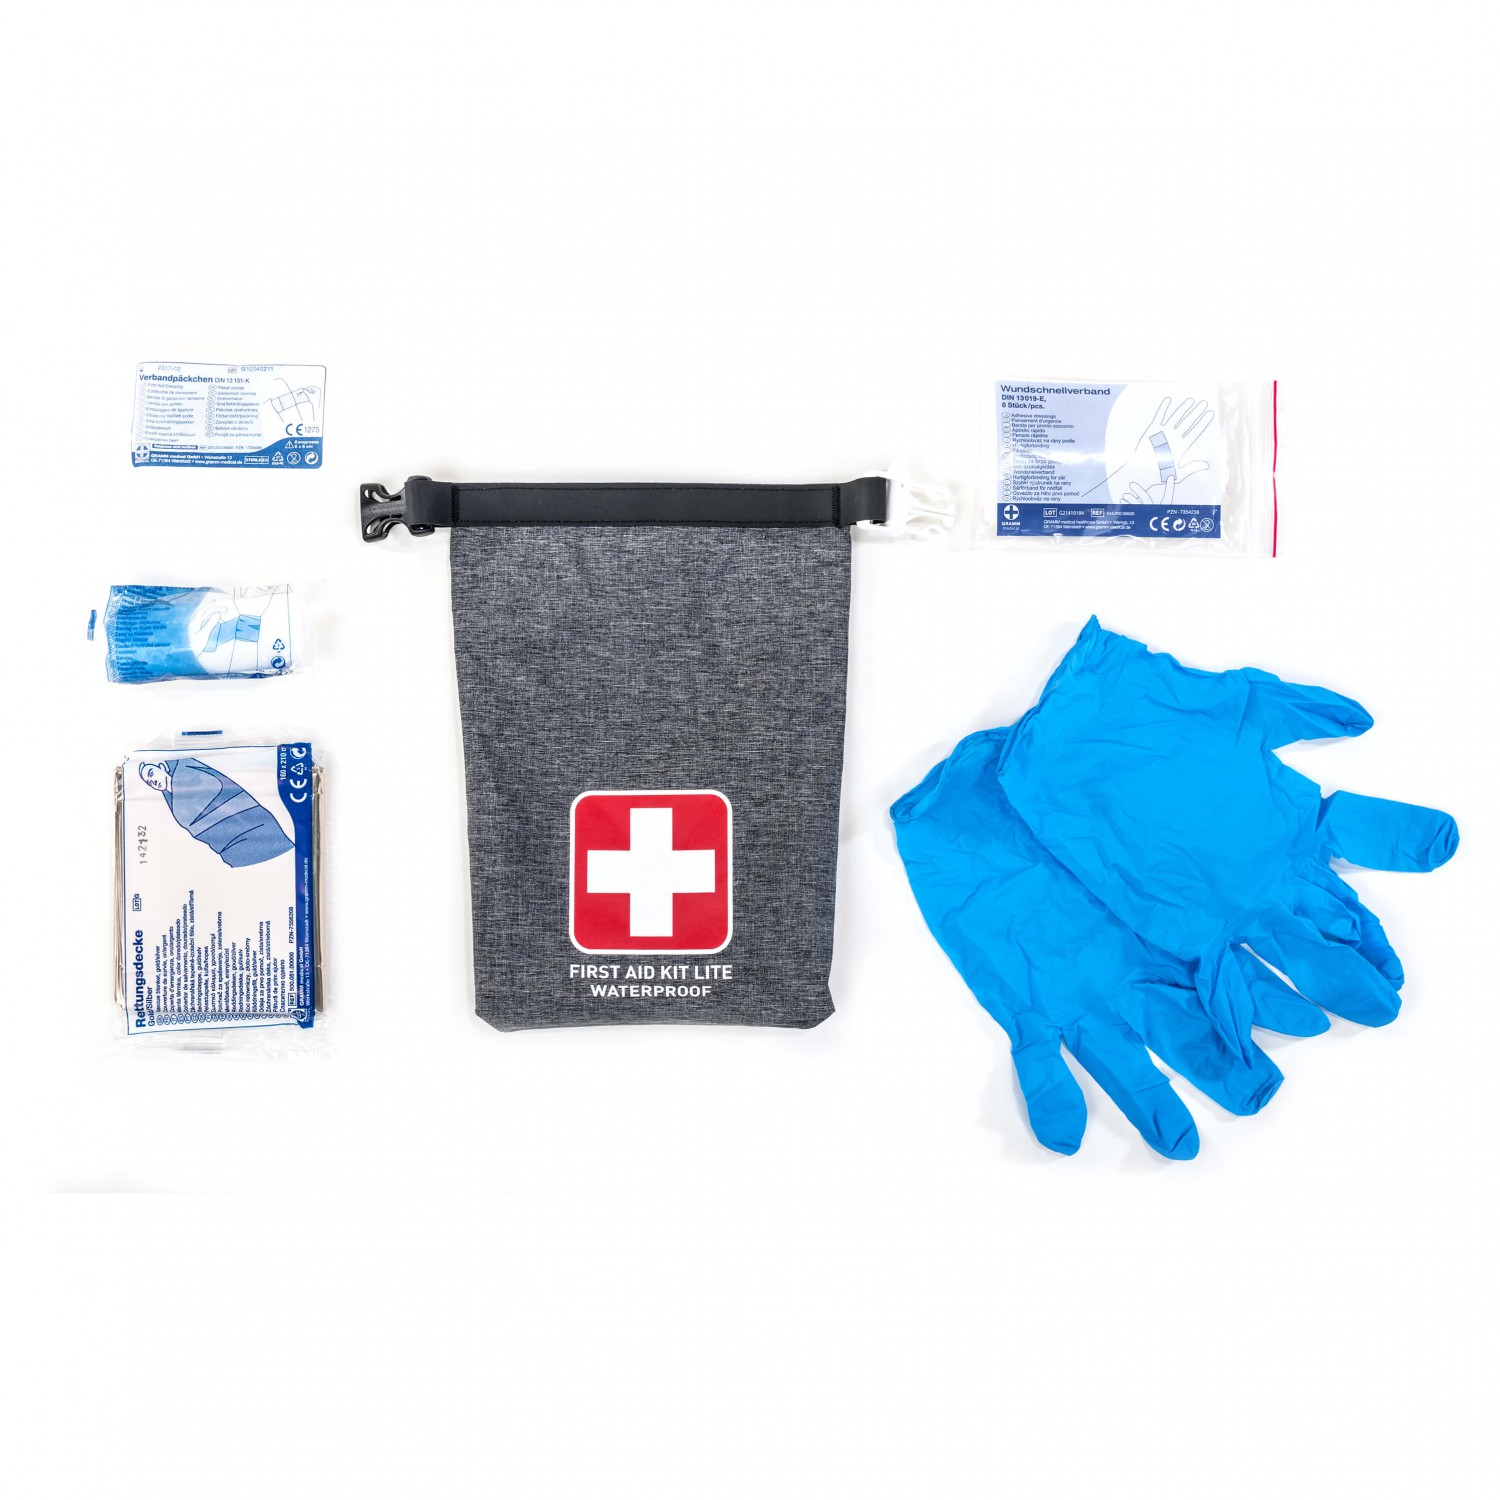 4079ff0bc11 Evoc First Aid Kit Lite Waterproof 1 - First Aid Kit | Buy online ...